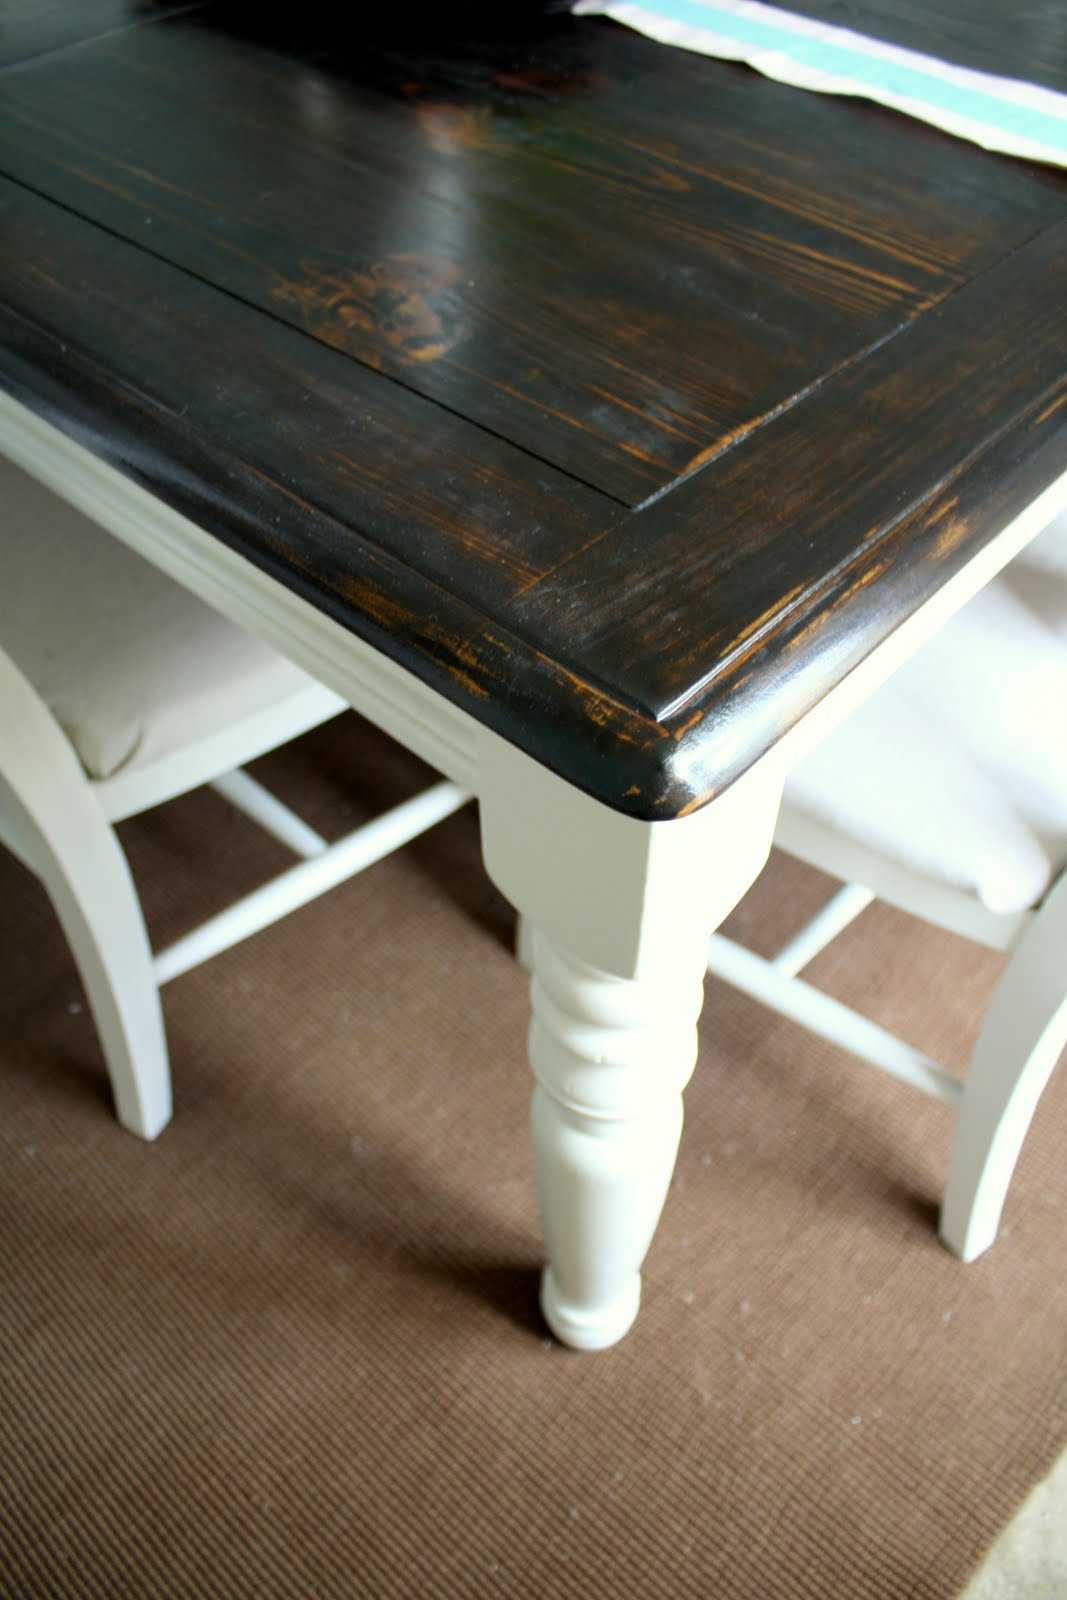 Dining Table Refinish Dining Table Paint : IMG4181 from choicediningtable.blogspot.com size 1067 x 1600 jpeg 122kB